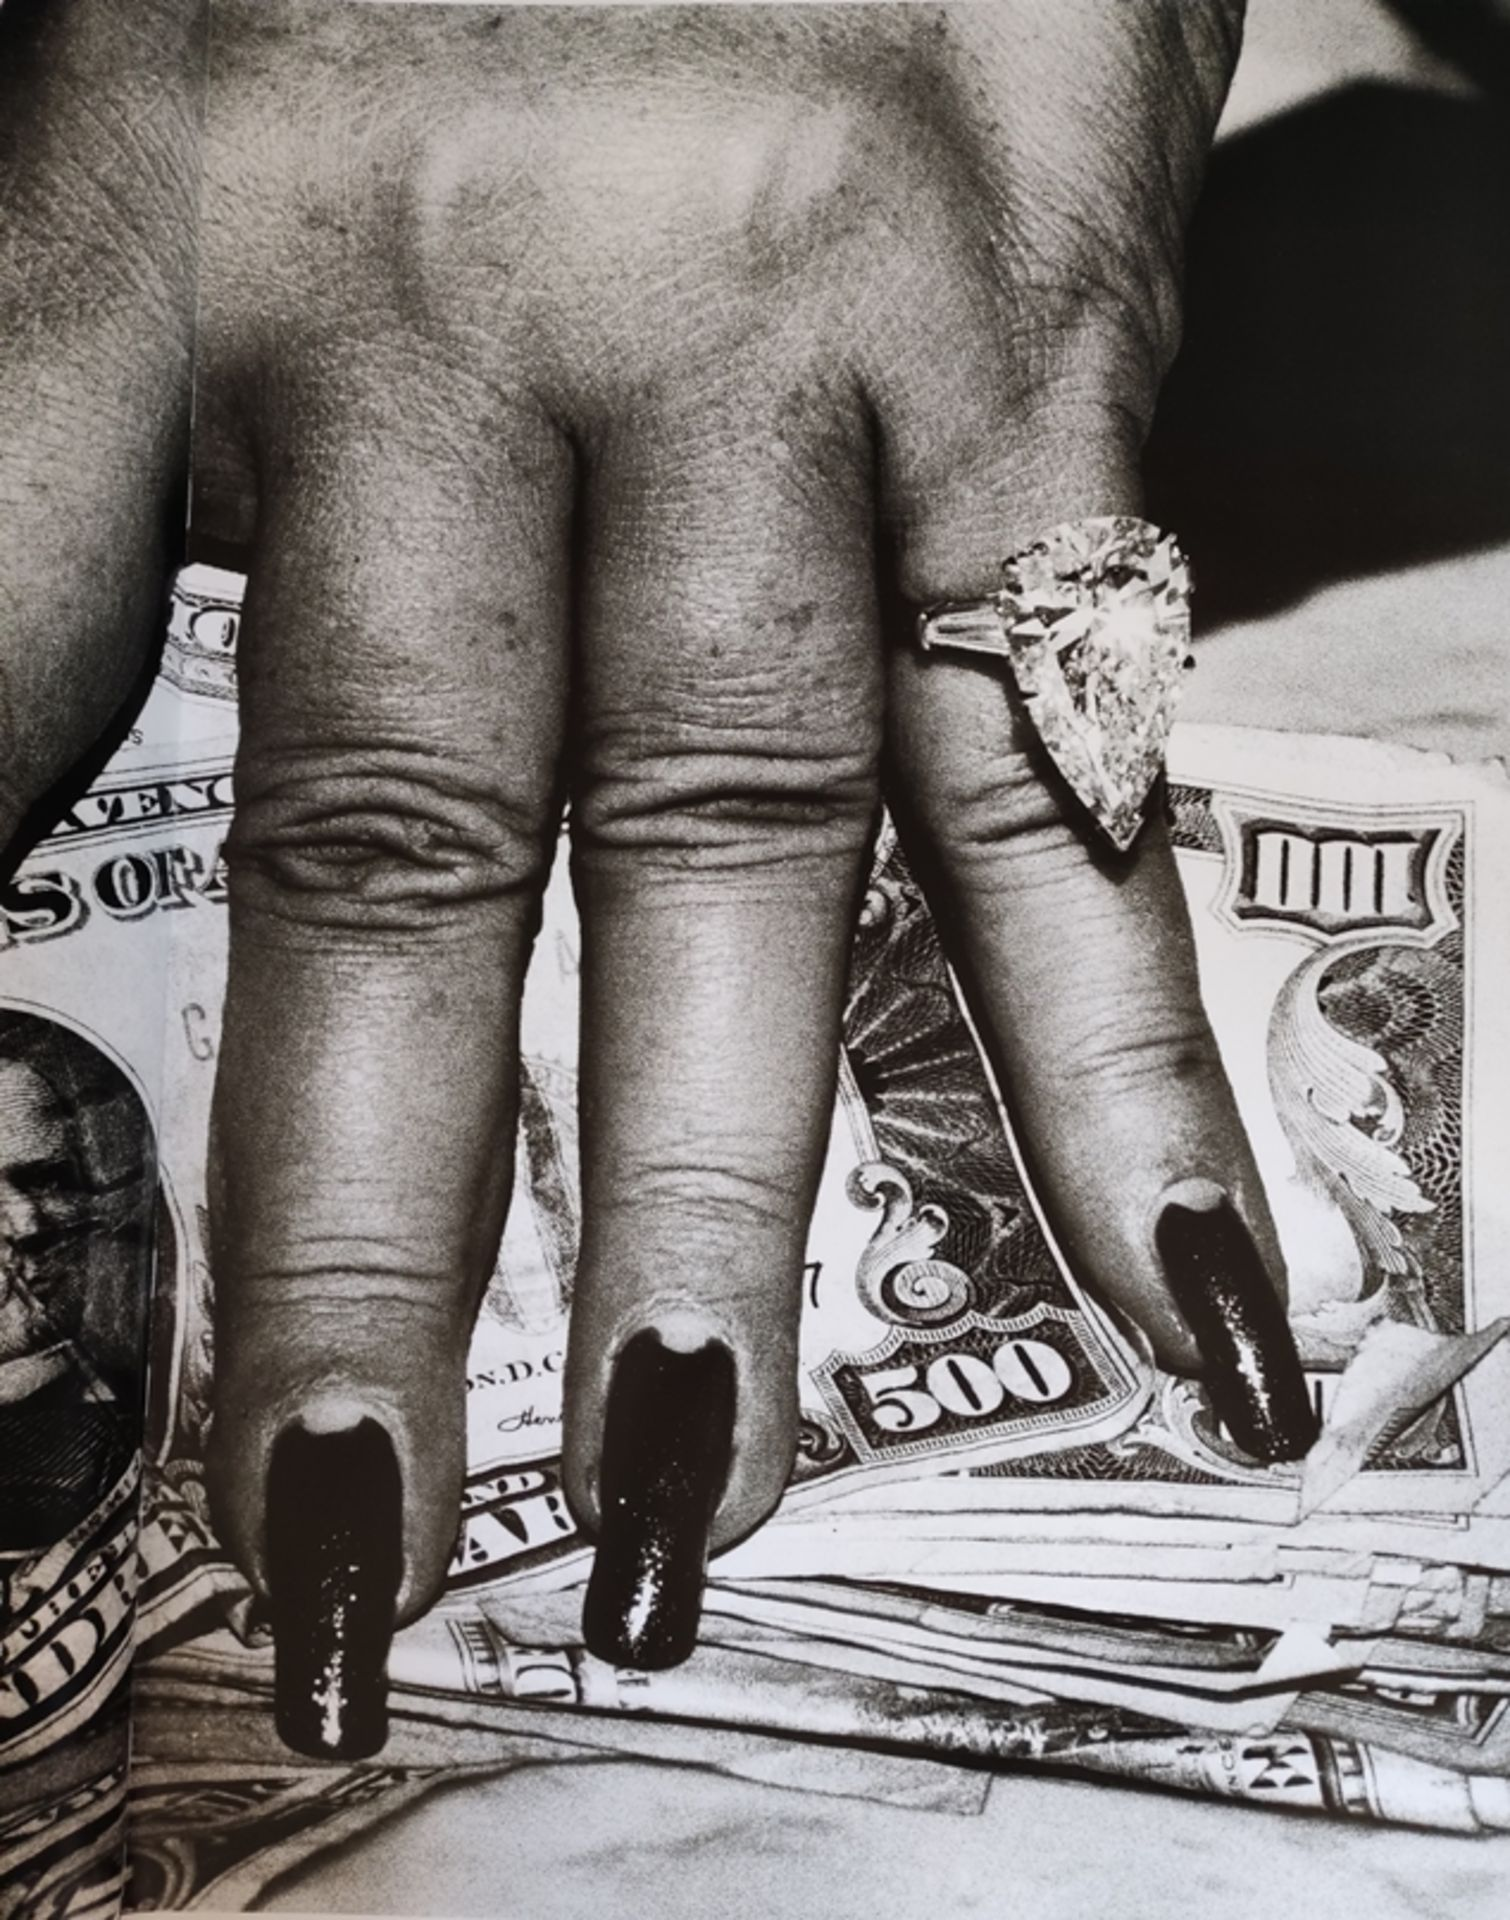 Helmut Newton's SUMO, edition of 10.000 copies, stamped by hand and signed by Helmut Newton, copy 4 - Image 5 of 8